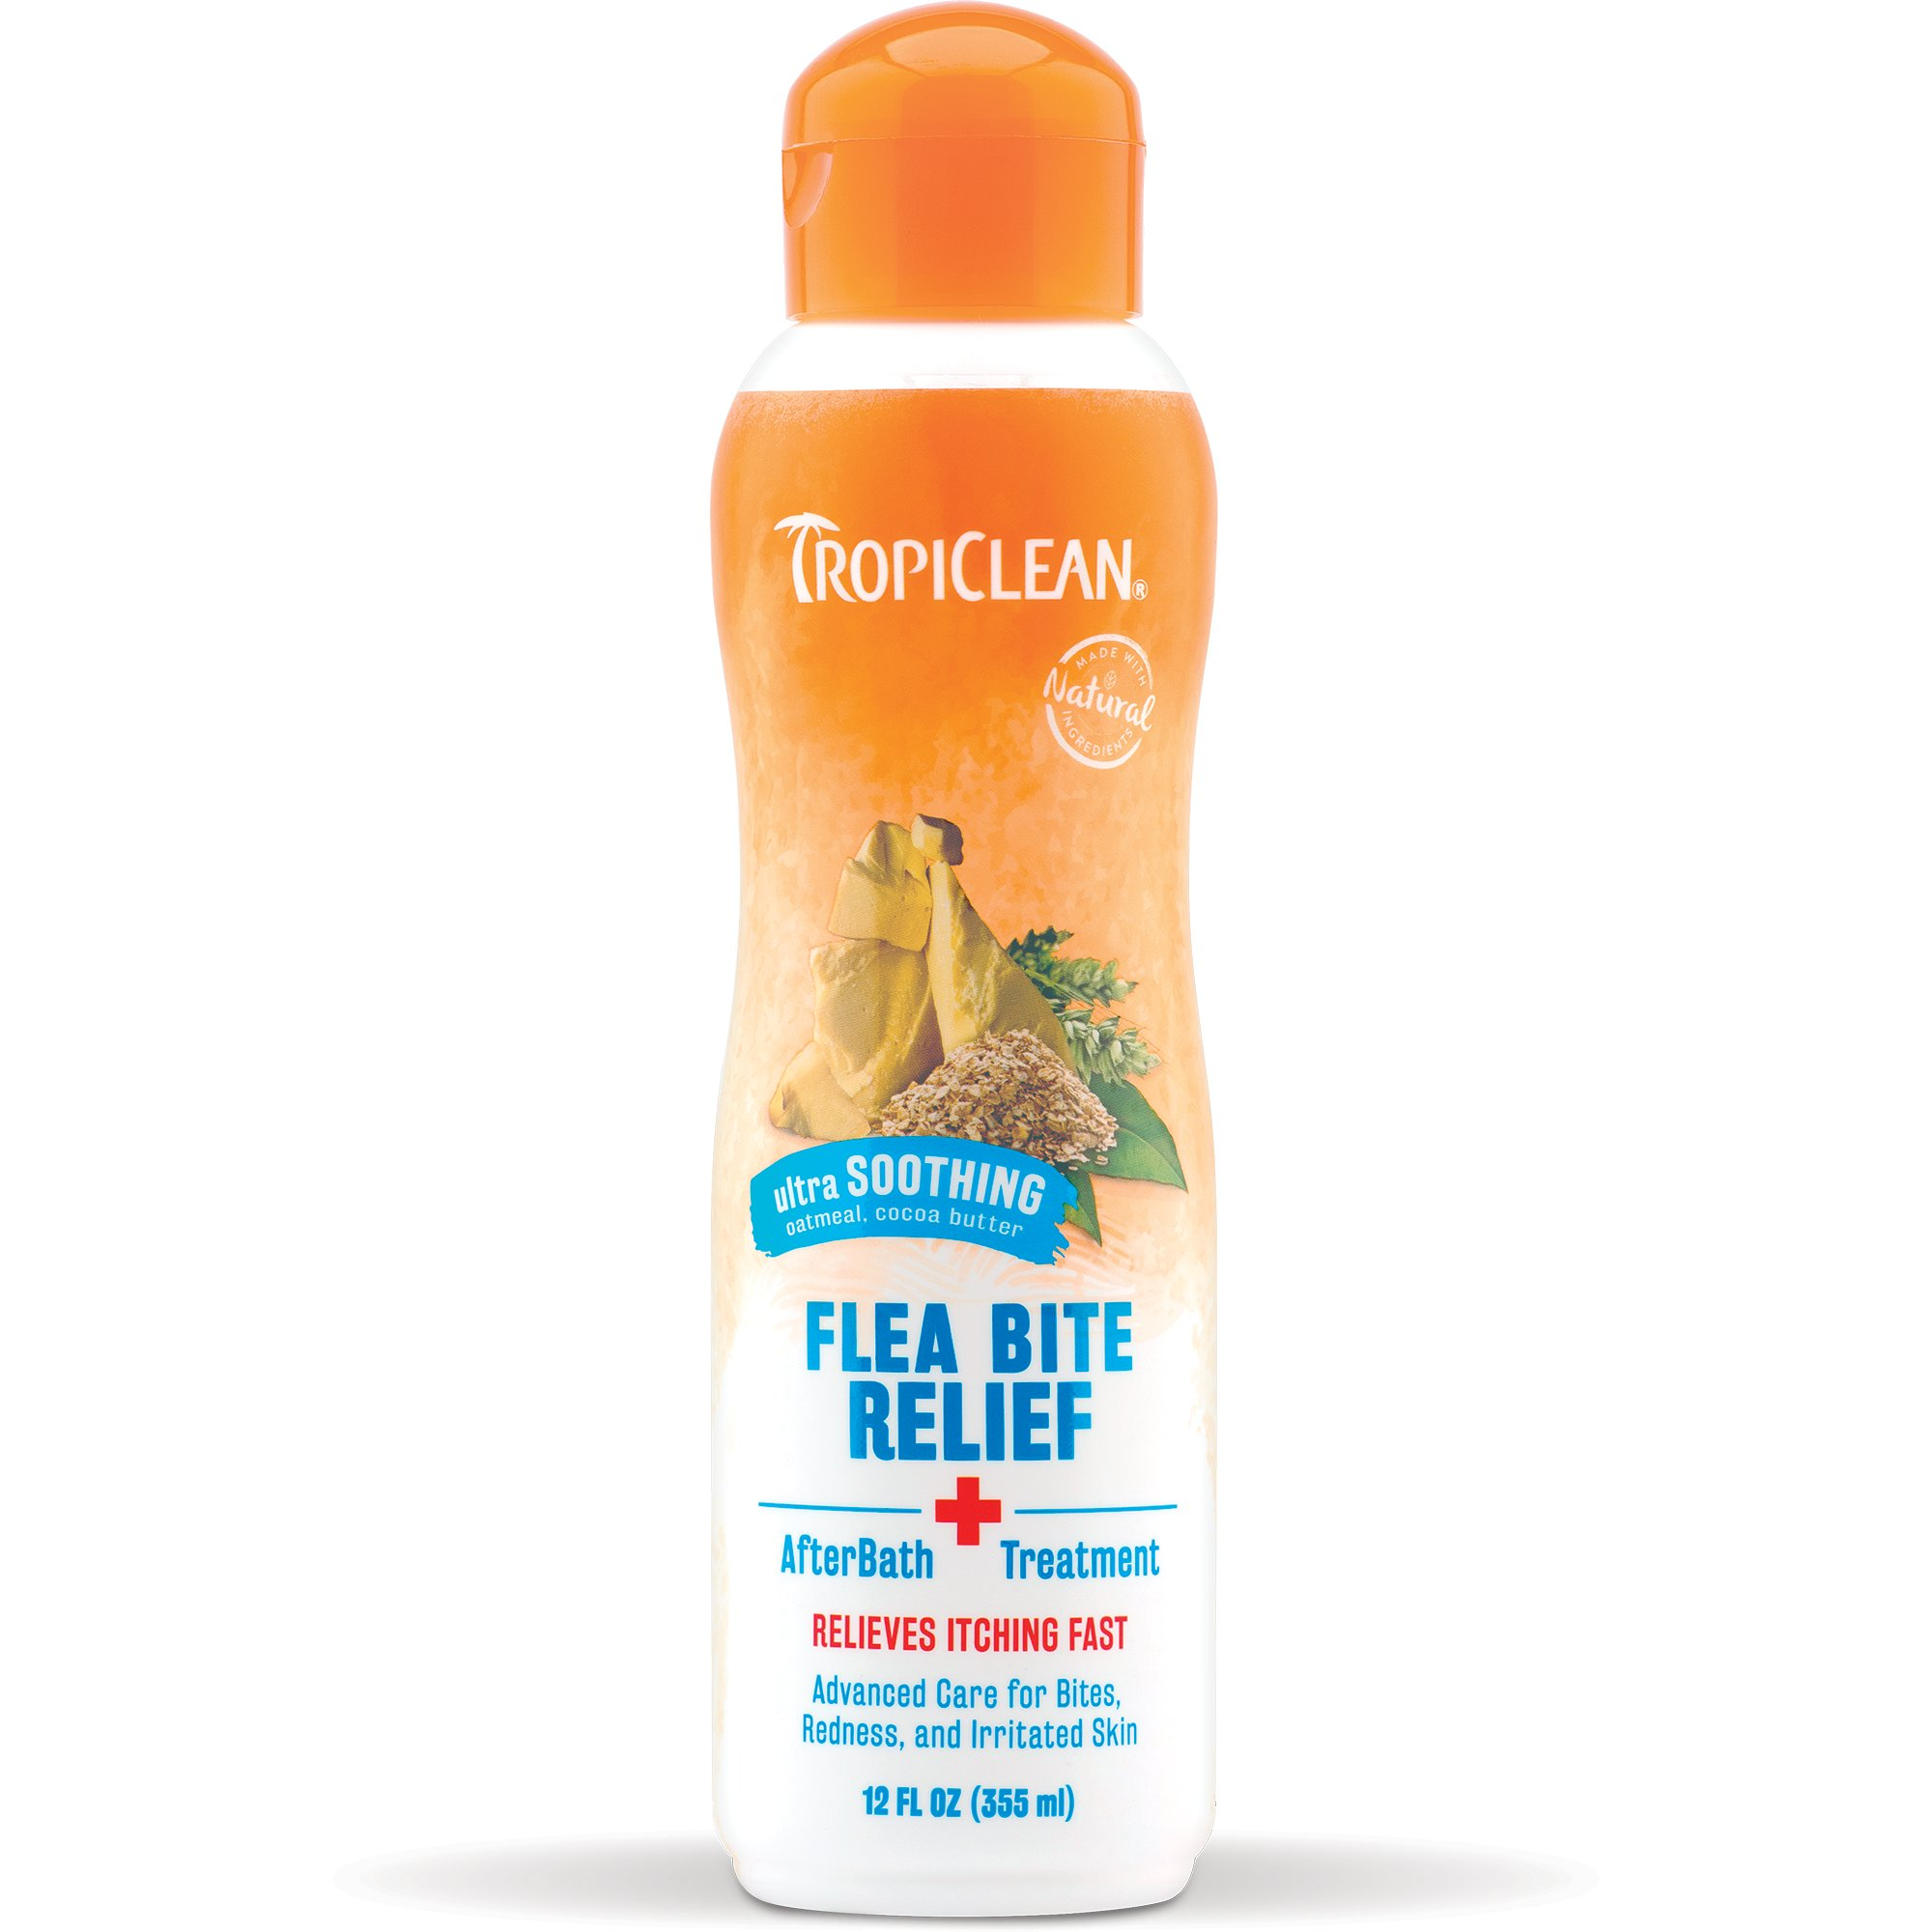 Tropiclean Natural Flea Amp Tick Bite Relief After Bath